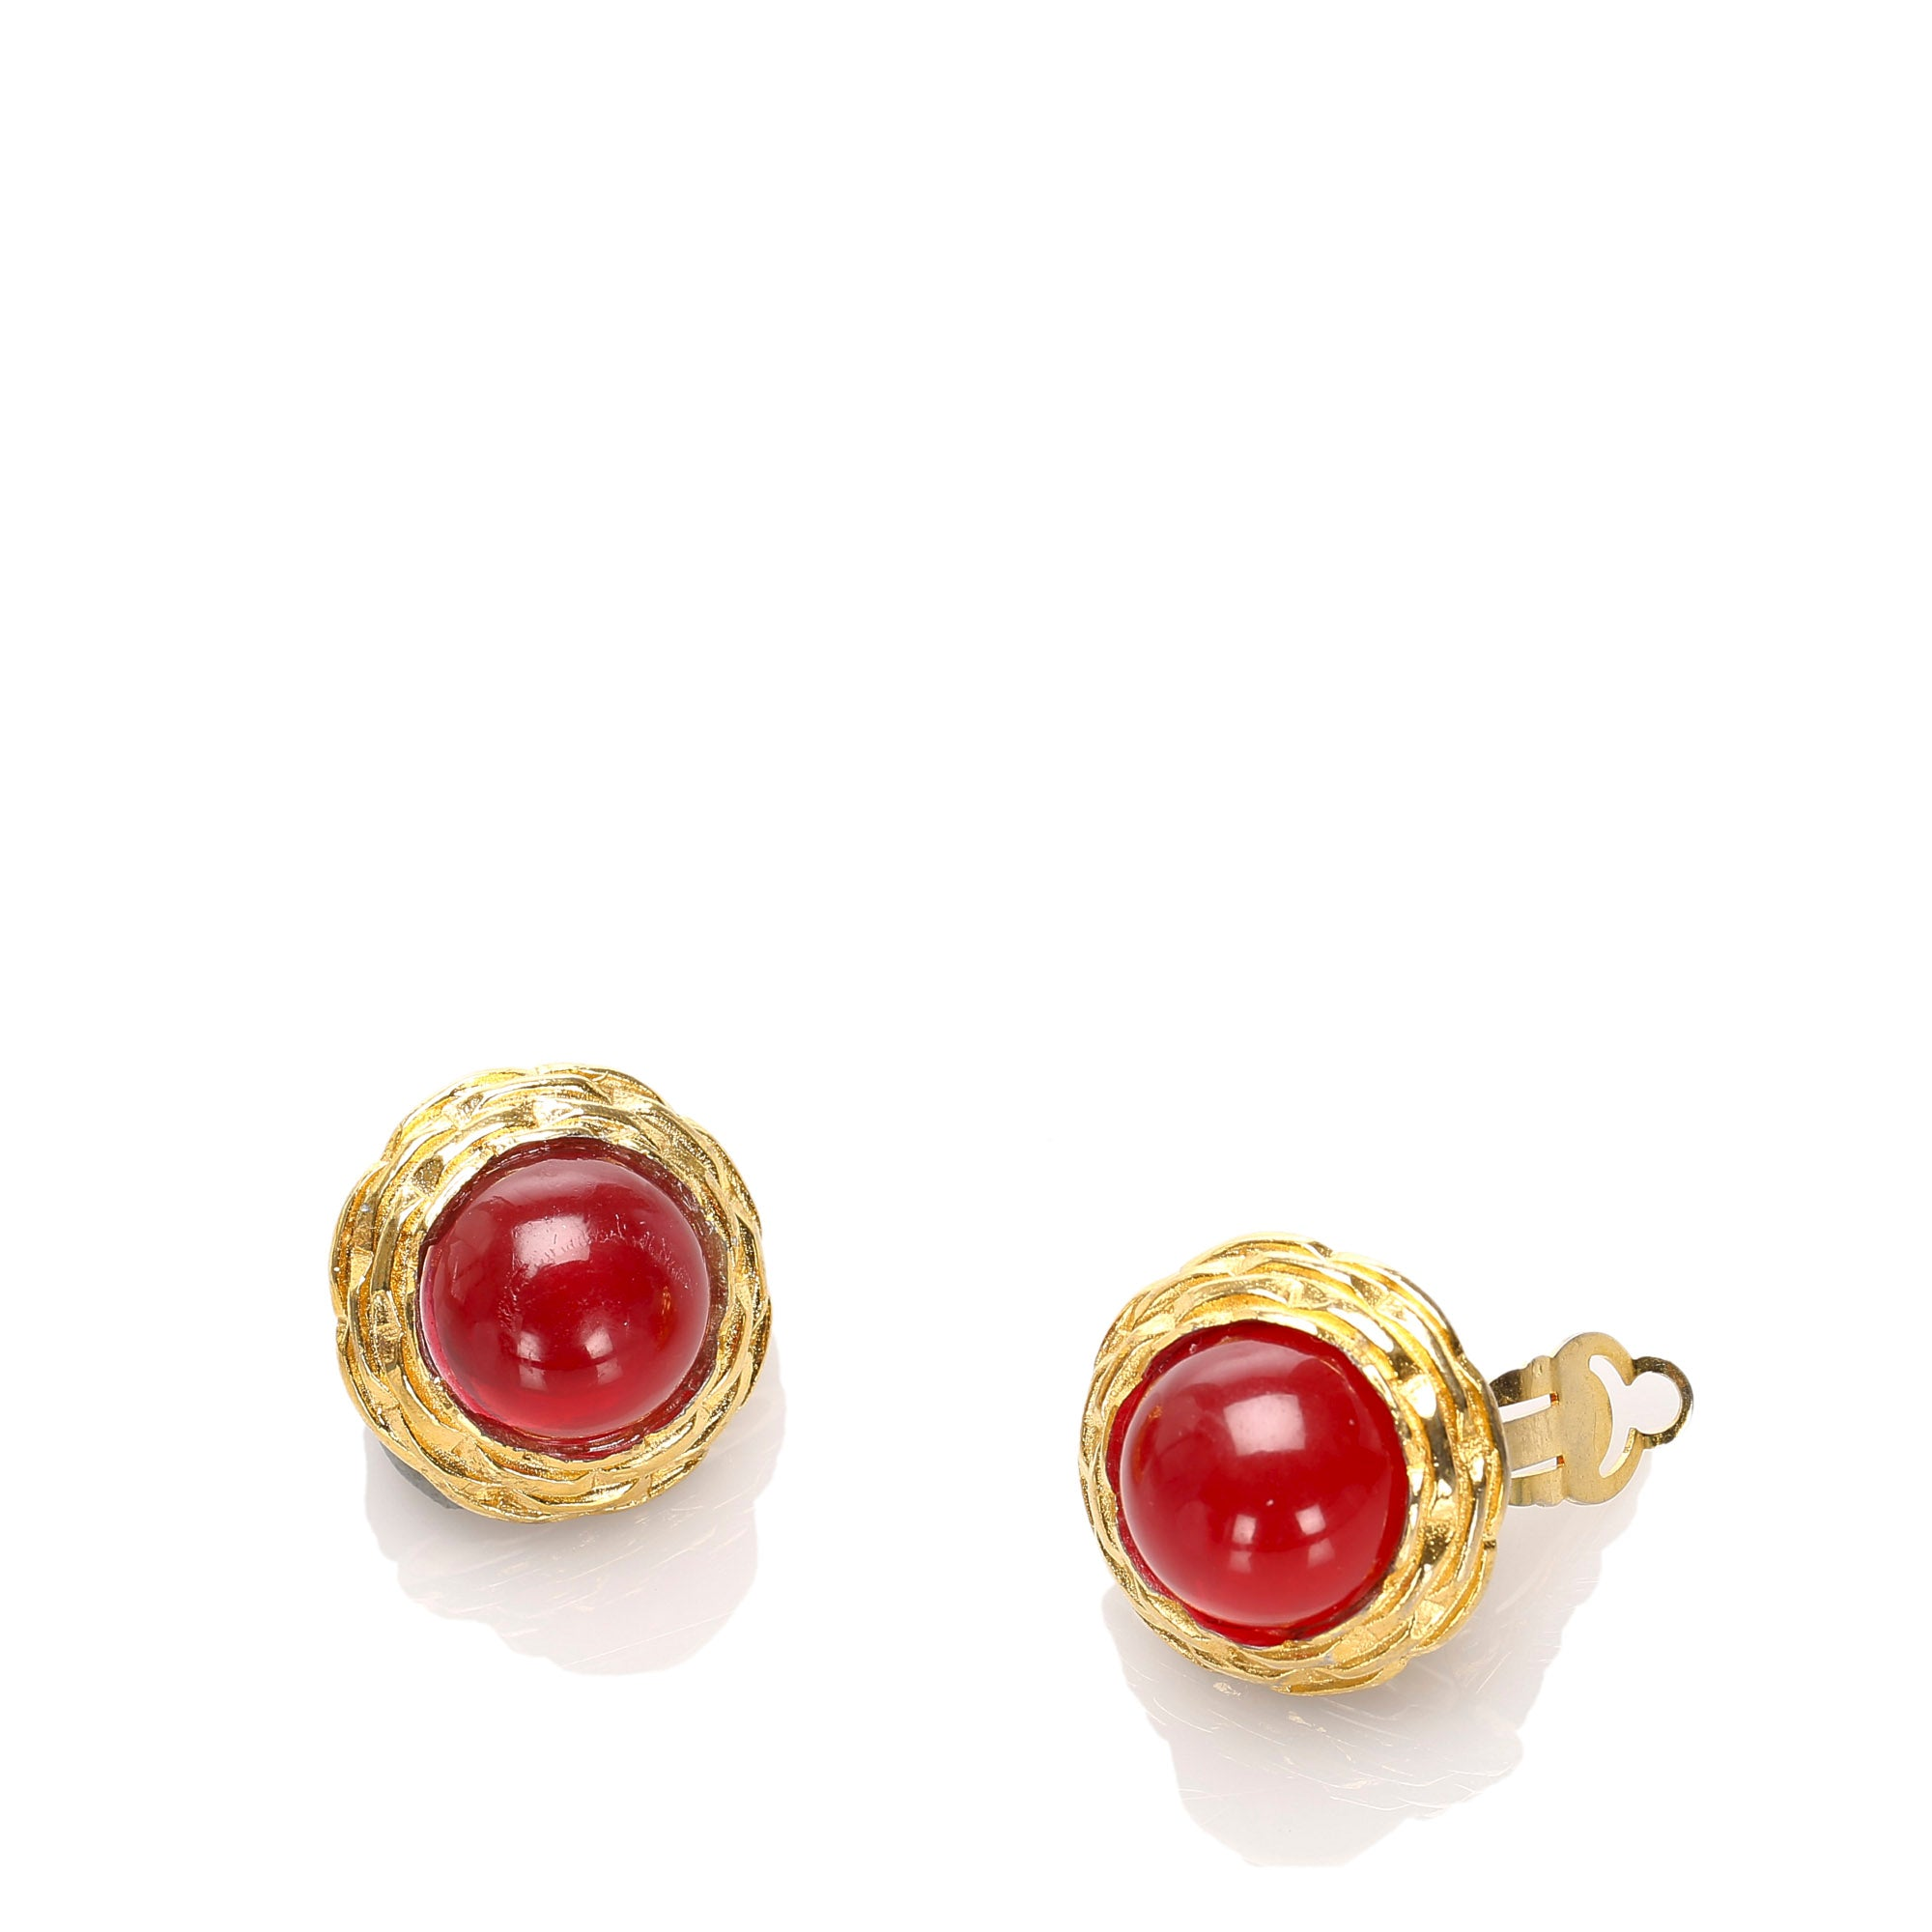 Chanel Red Round Stone Clip-on Earrings